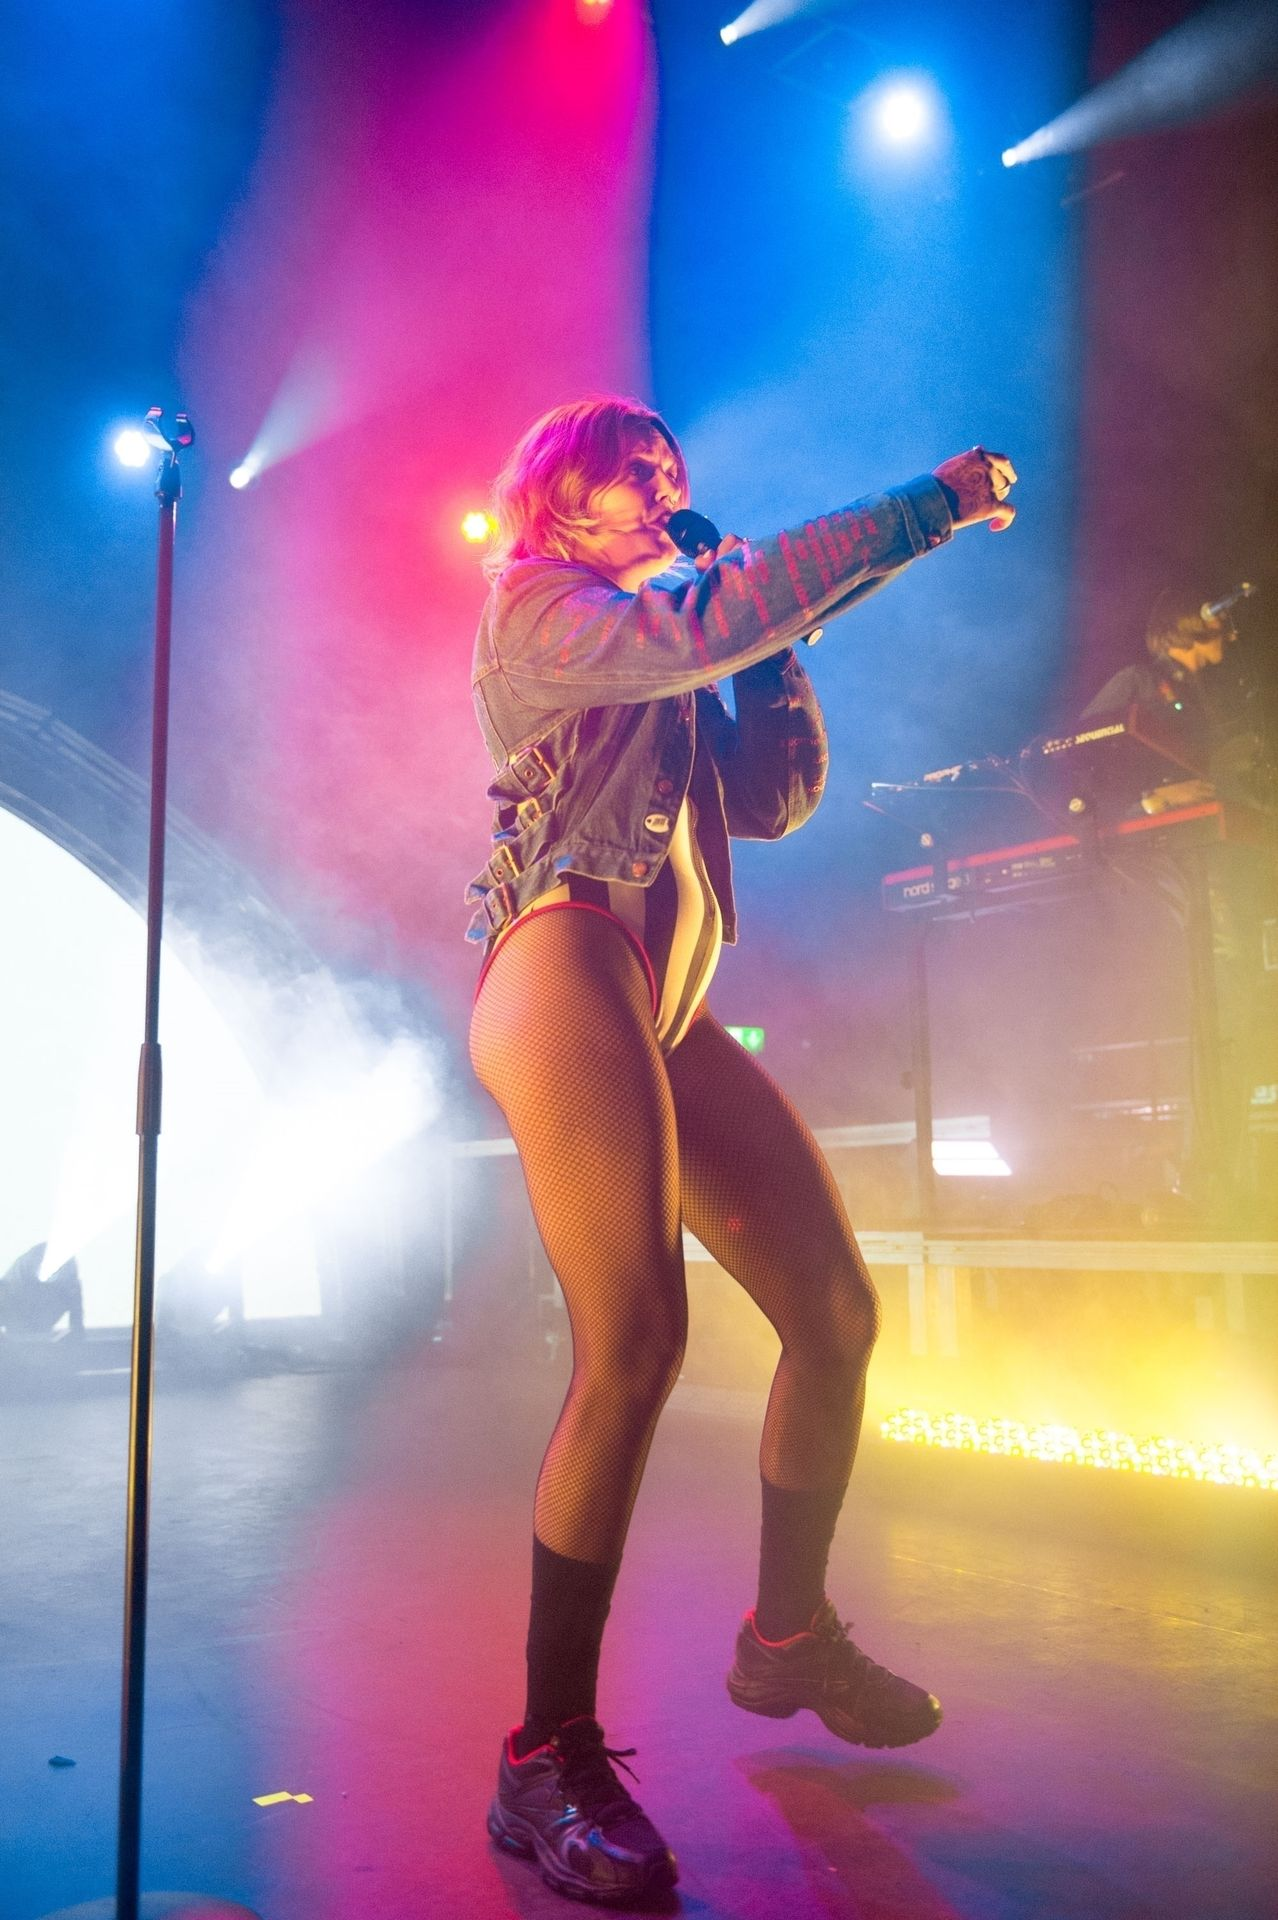 Tove Lo Is In Concert Performing Live At O2 Forum Kentish Town In London 0034